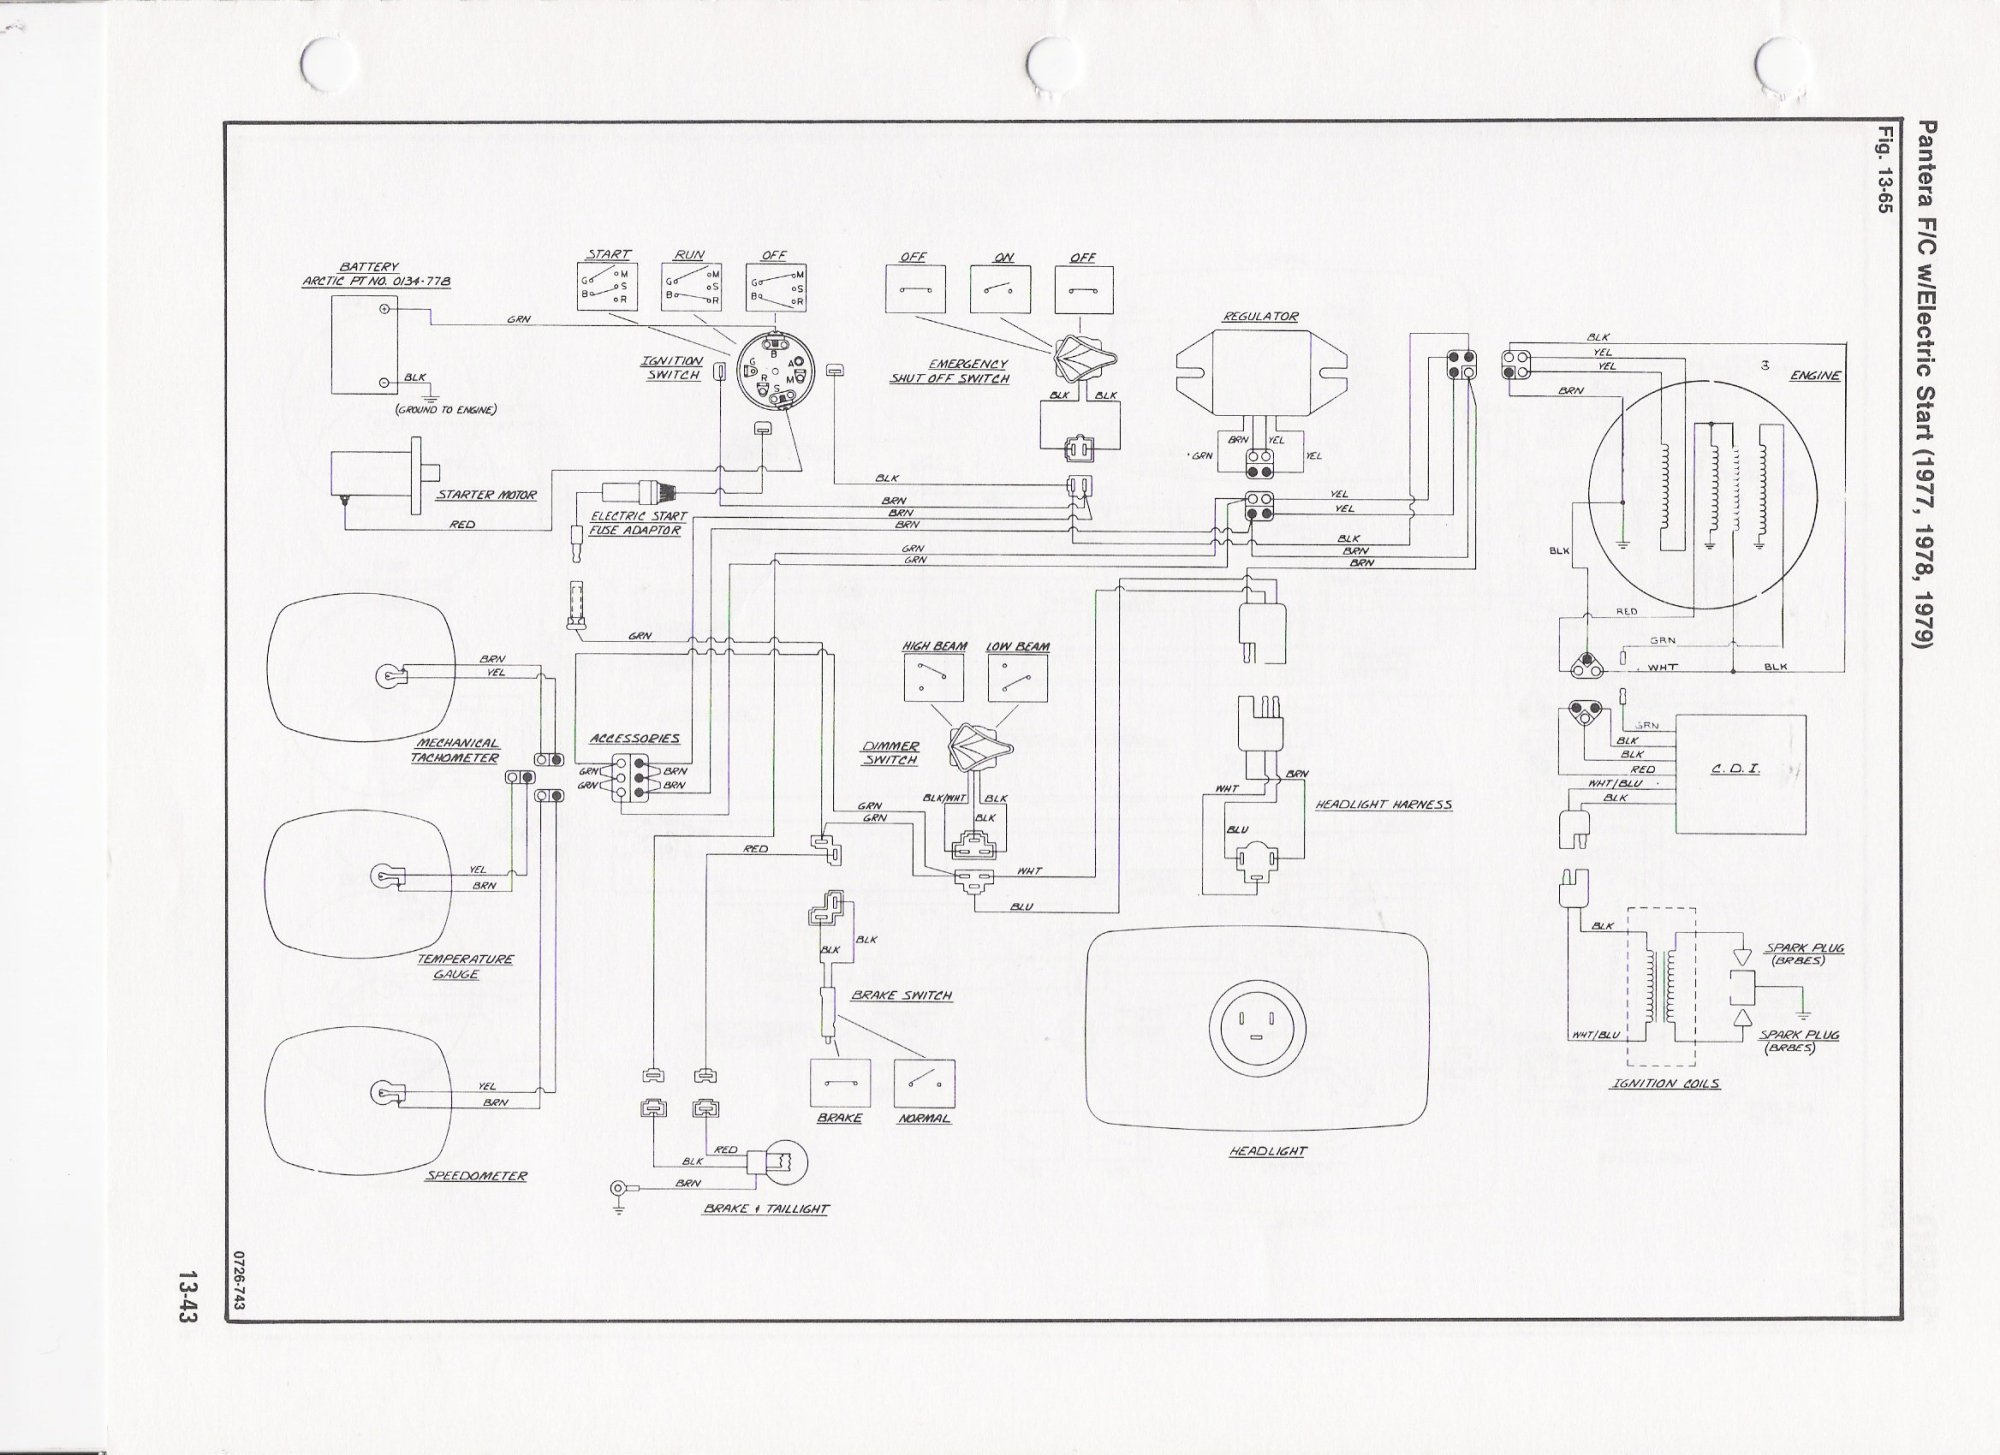 hight resolution of wiring diagram for 1999 arctic cat 400 wiring libraryarctic cat jag wiring diagram for 1979 schematics